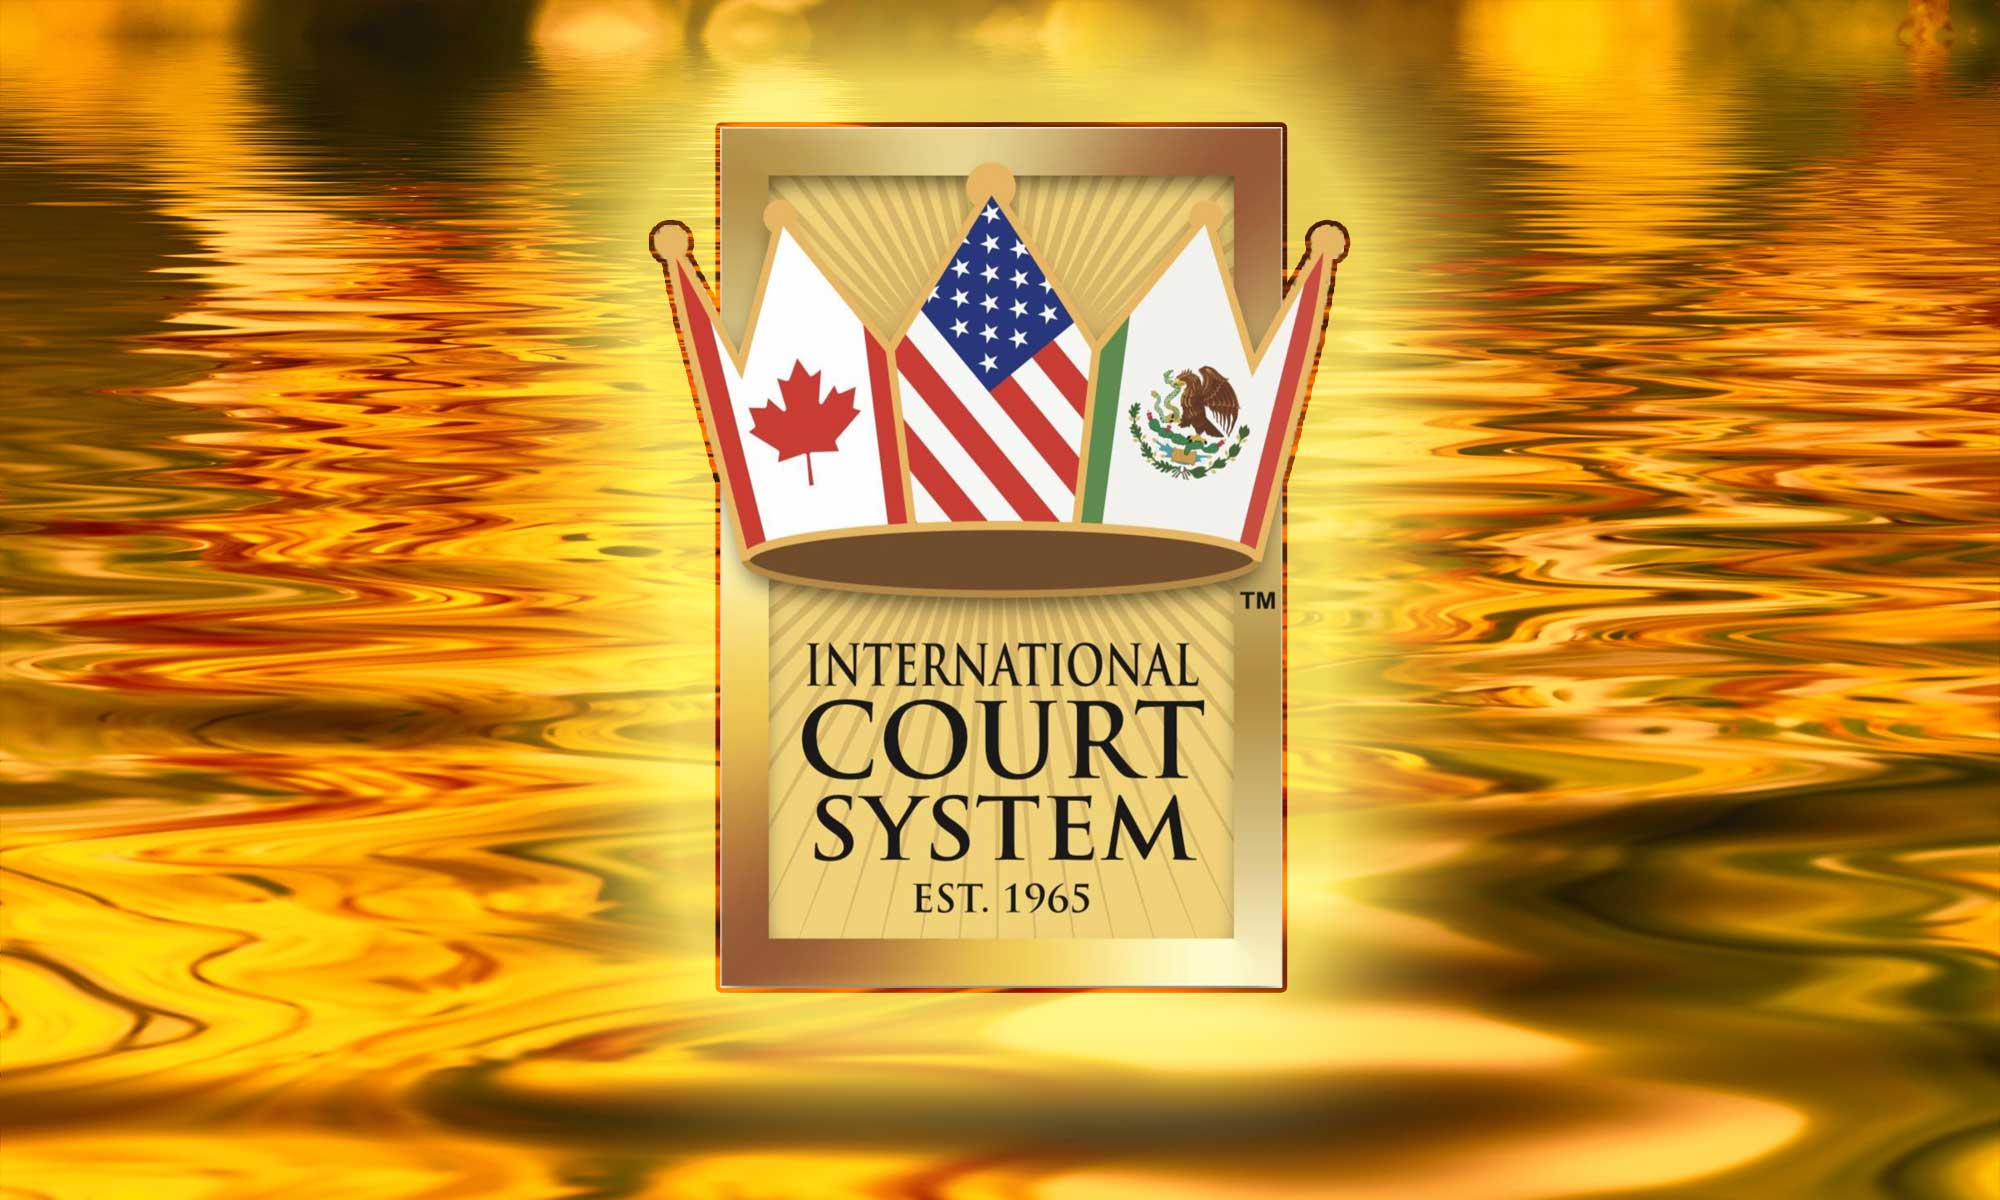 The Courts – The International Court System